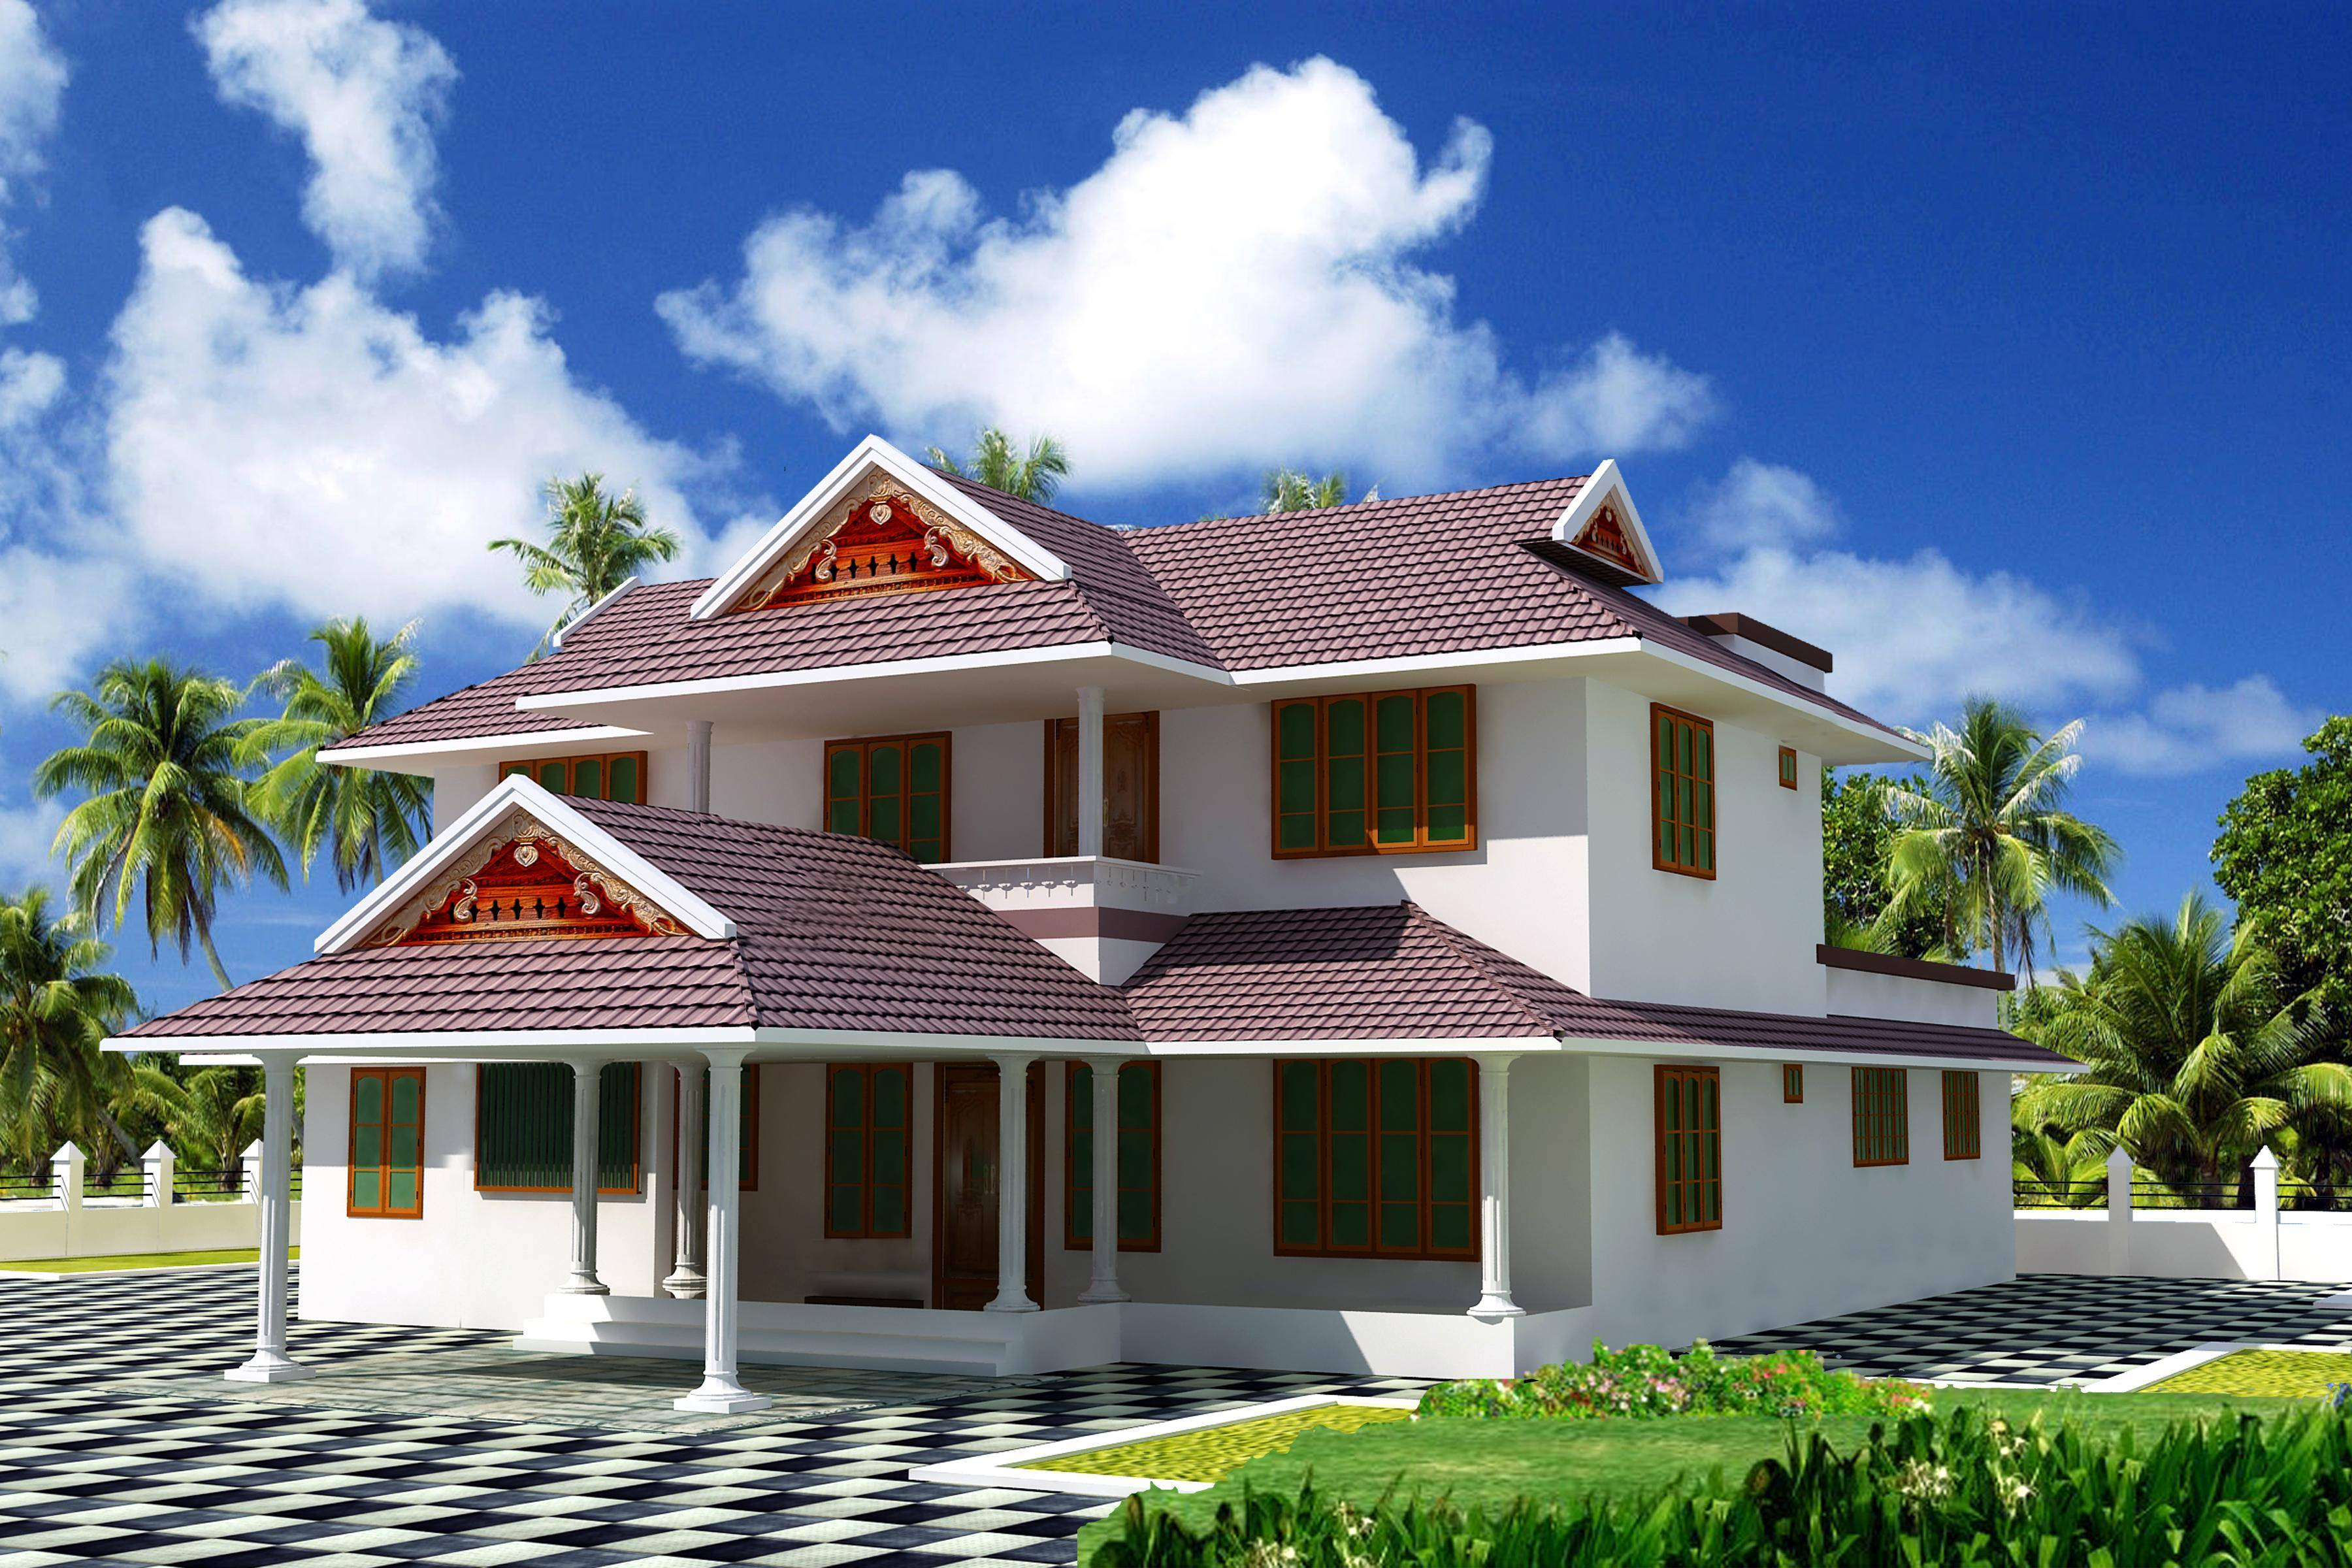 Picture gallery of kerala houses